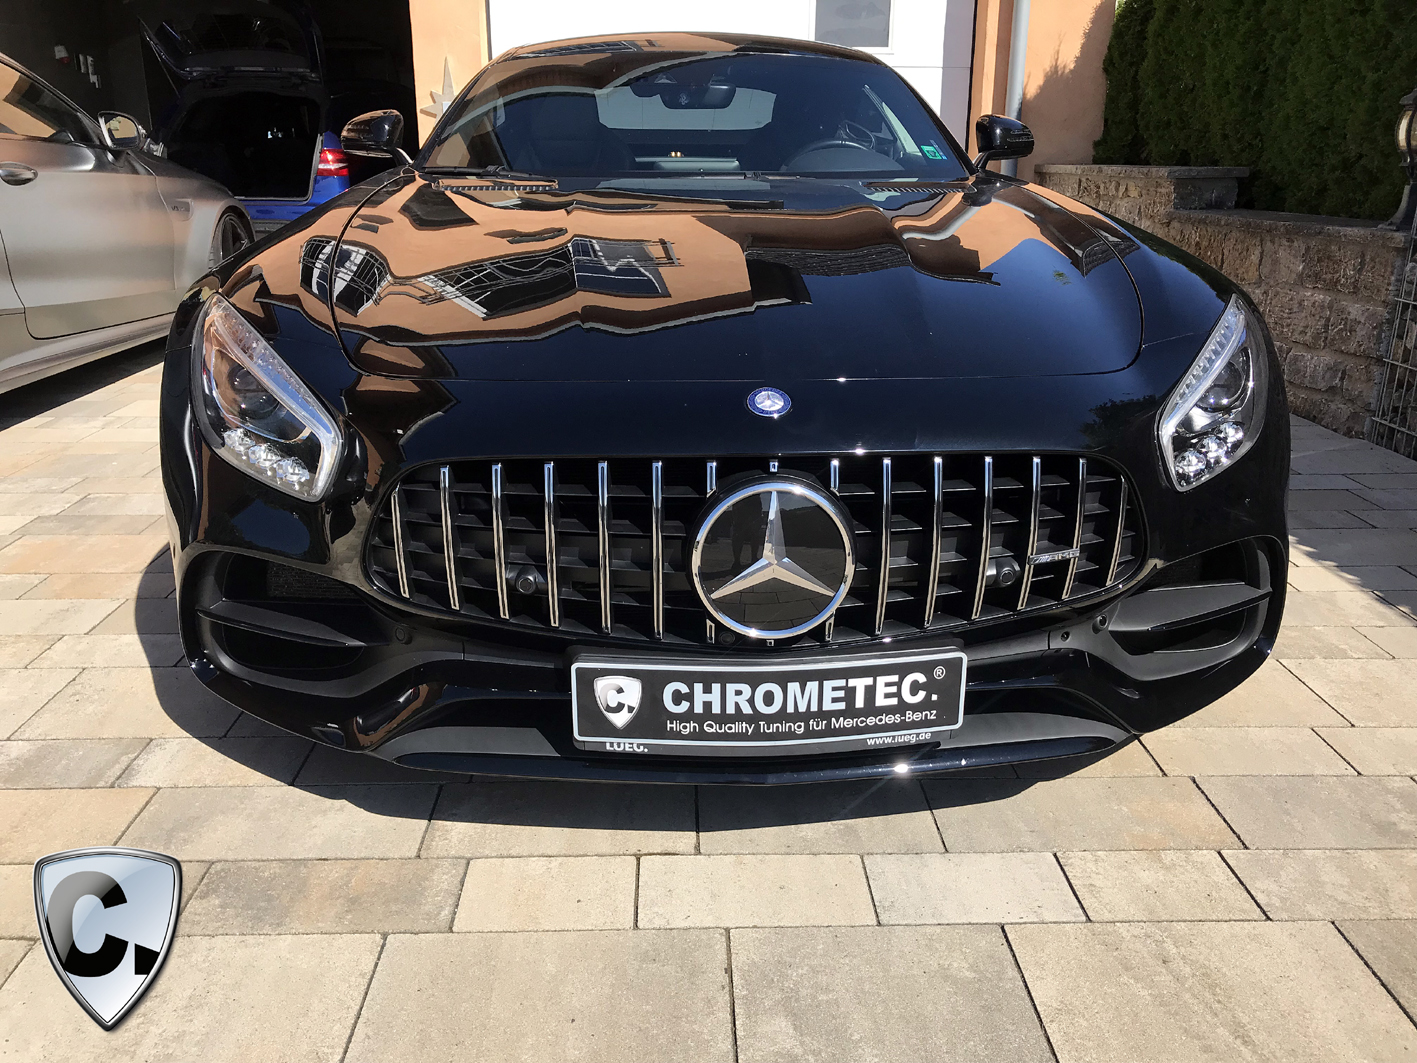 Mercedes Amg Gt Coupe With A Front Upgrade Facelift Panamericana From Chrometec Chrometec